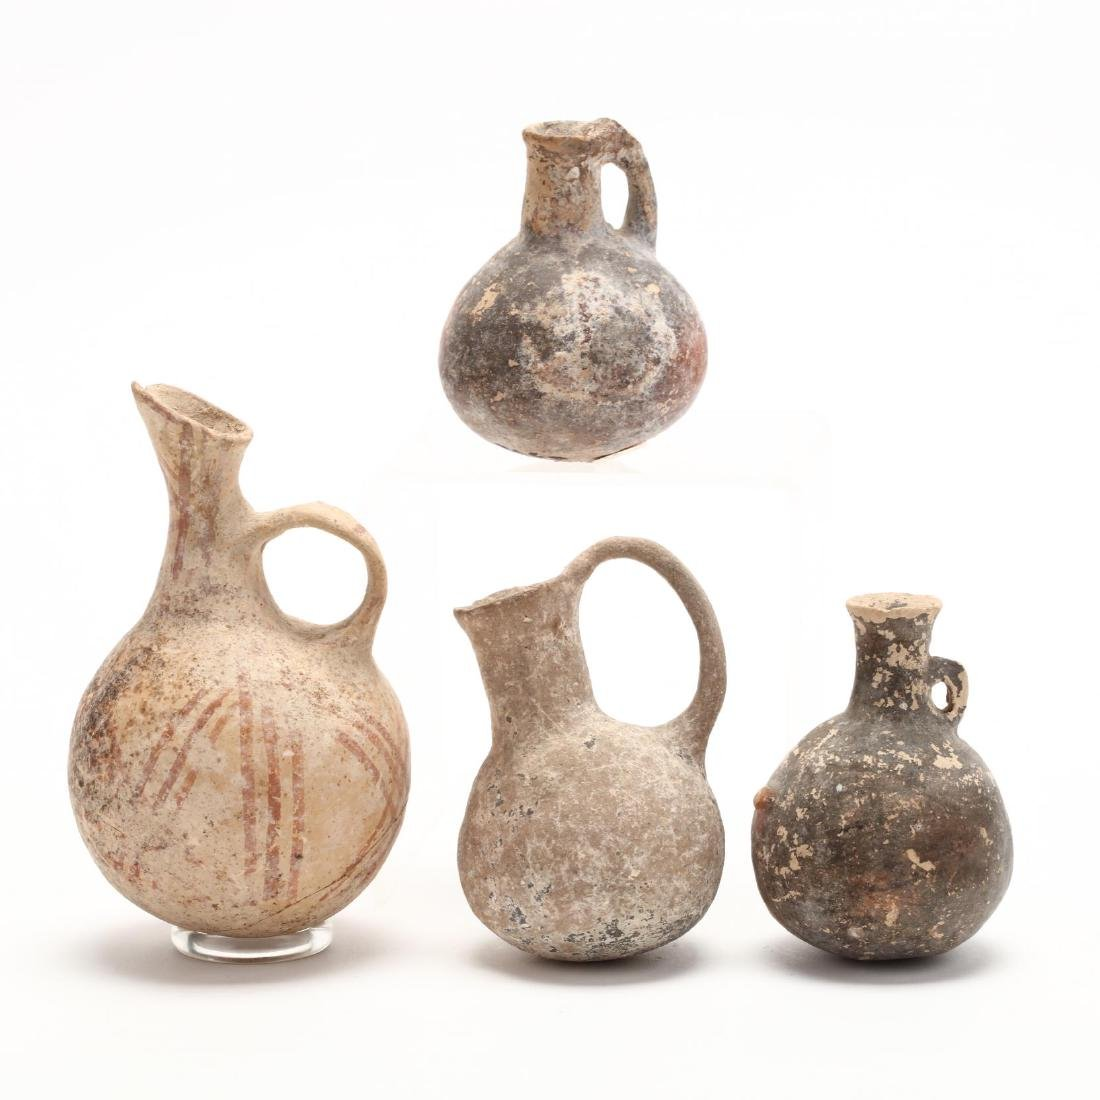 Four Cypriot Bronze Age Juglets - 3